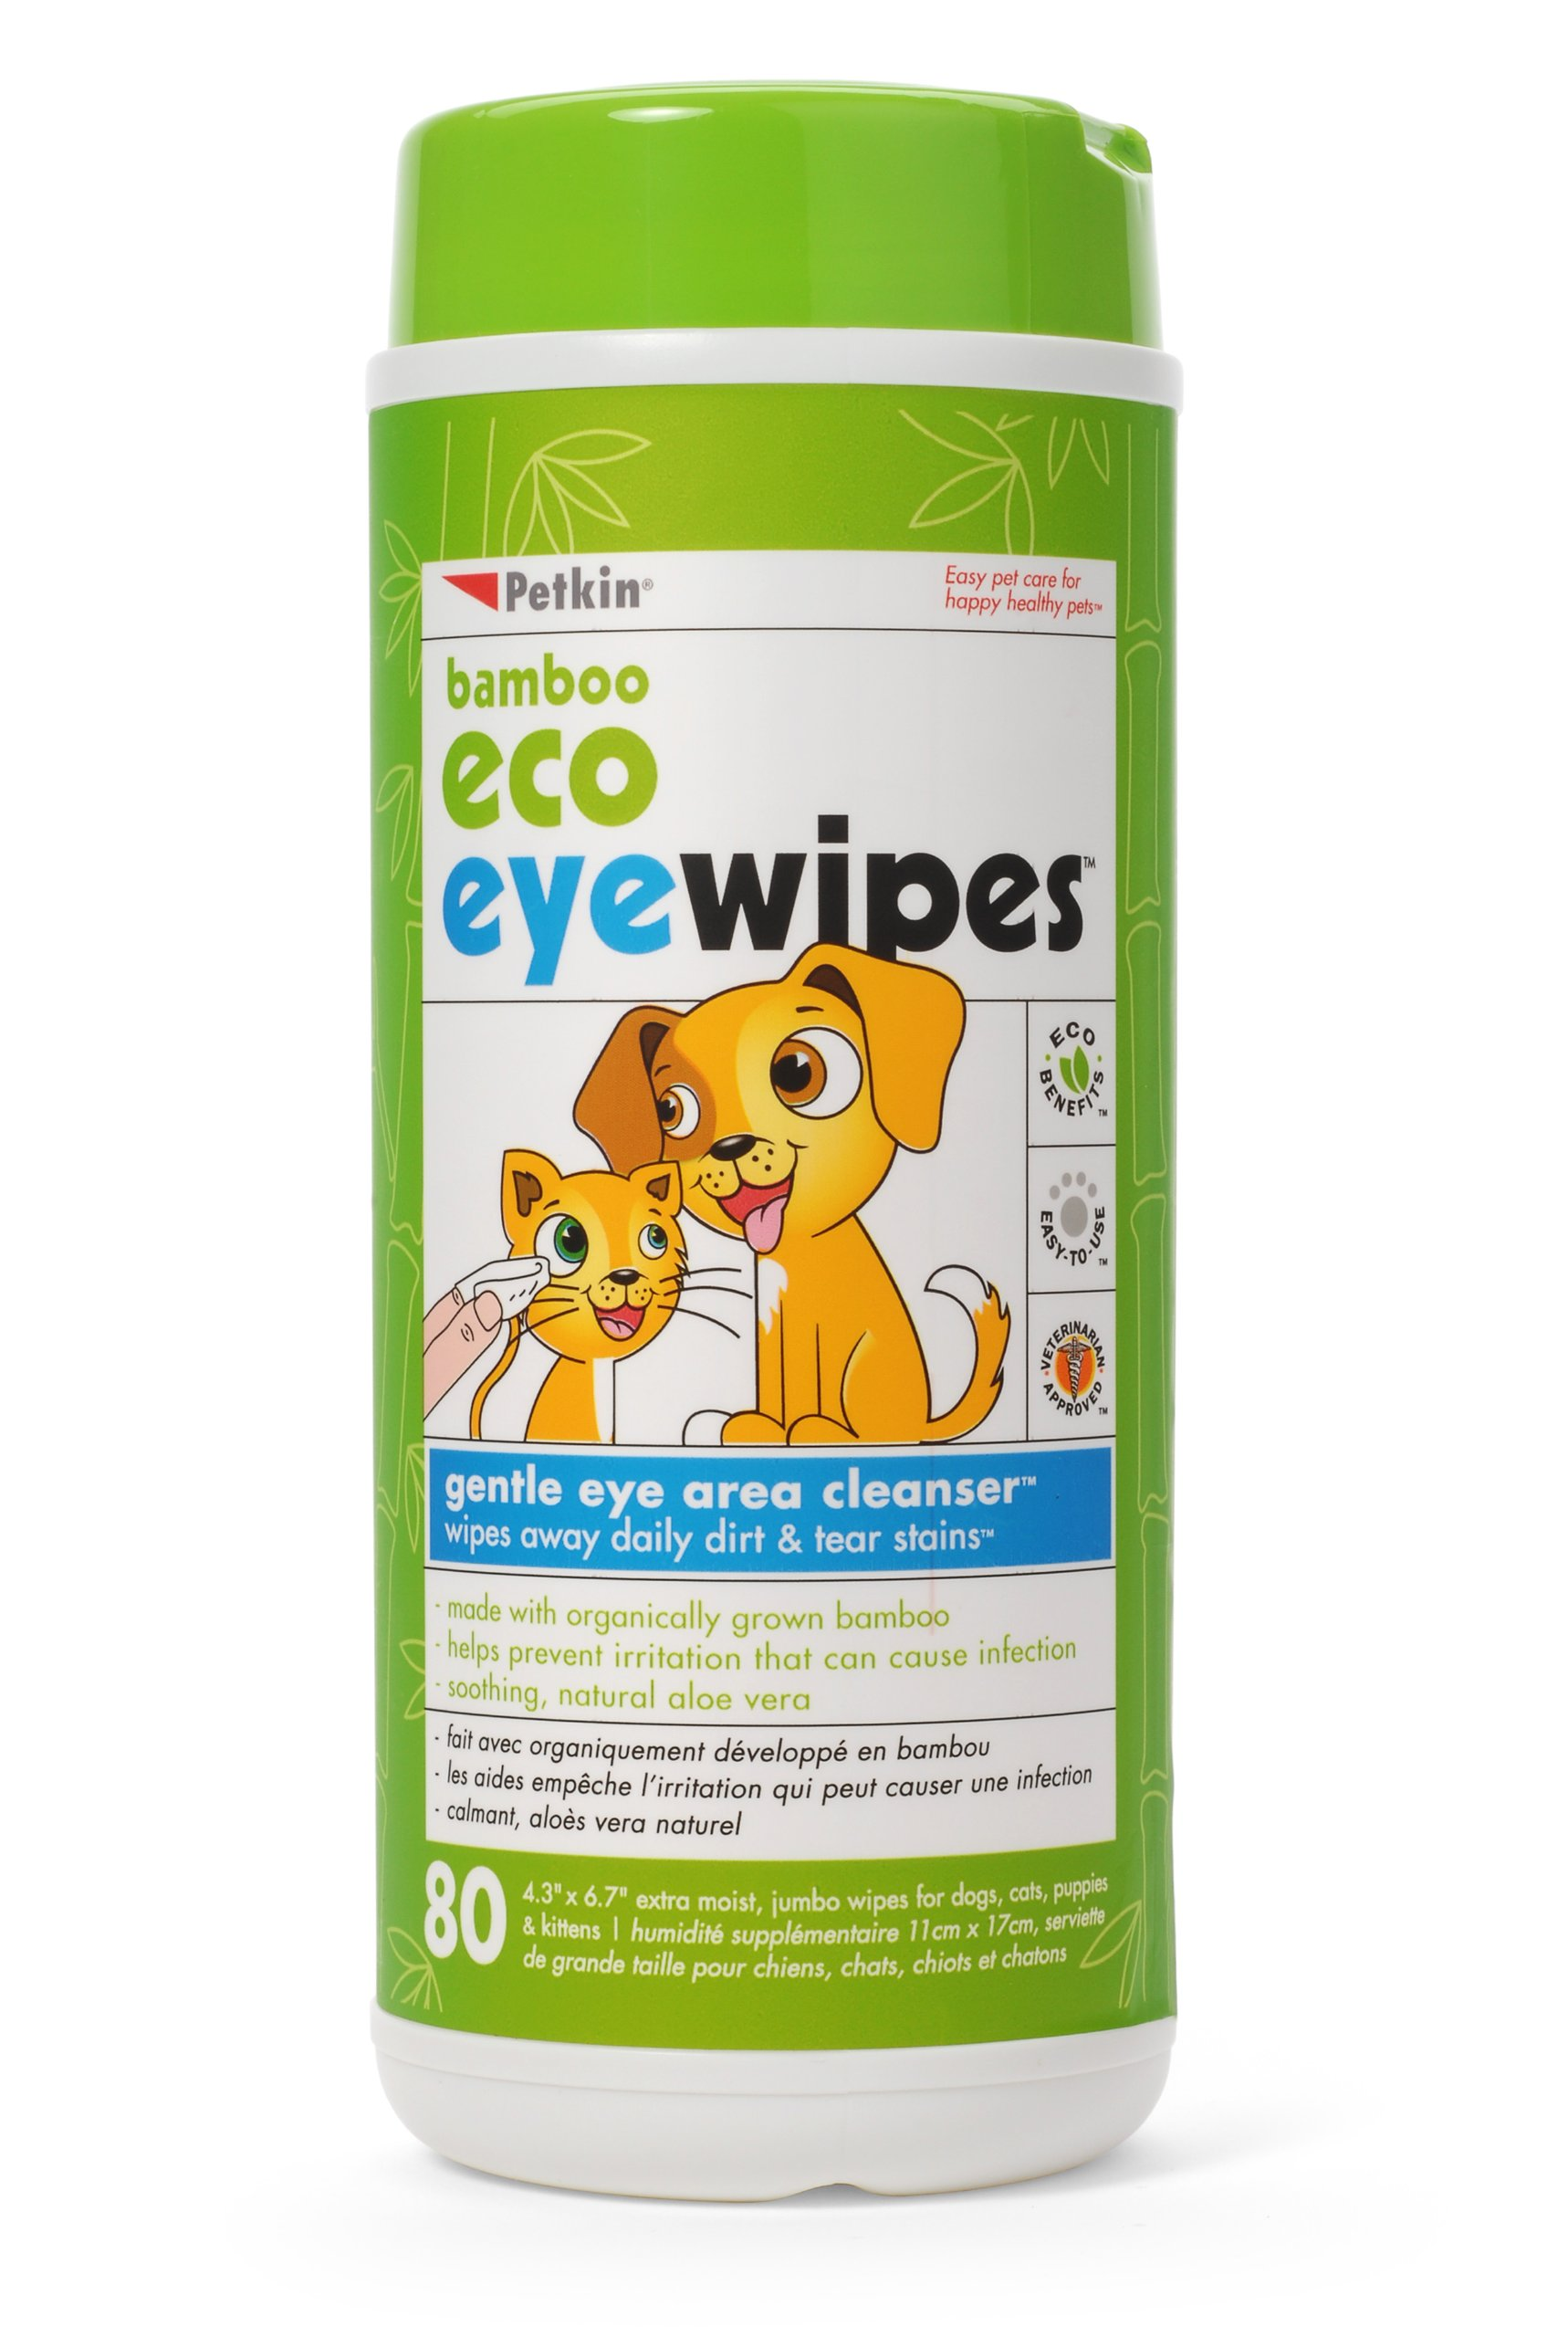 Petkin Bamboo Eco Eyewipes, 80 Count